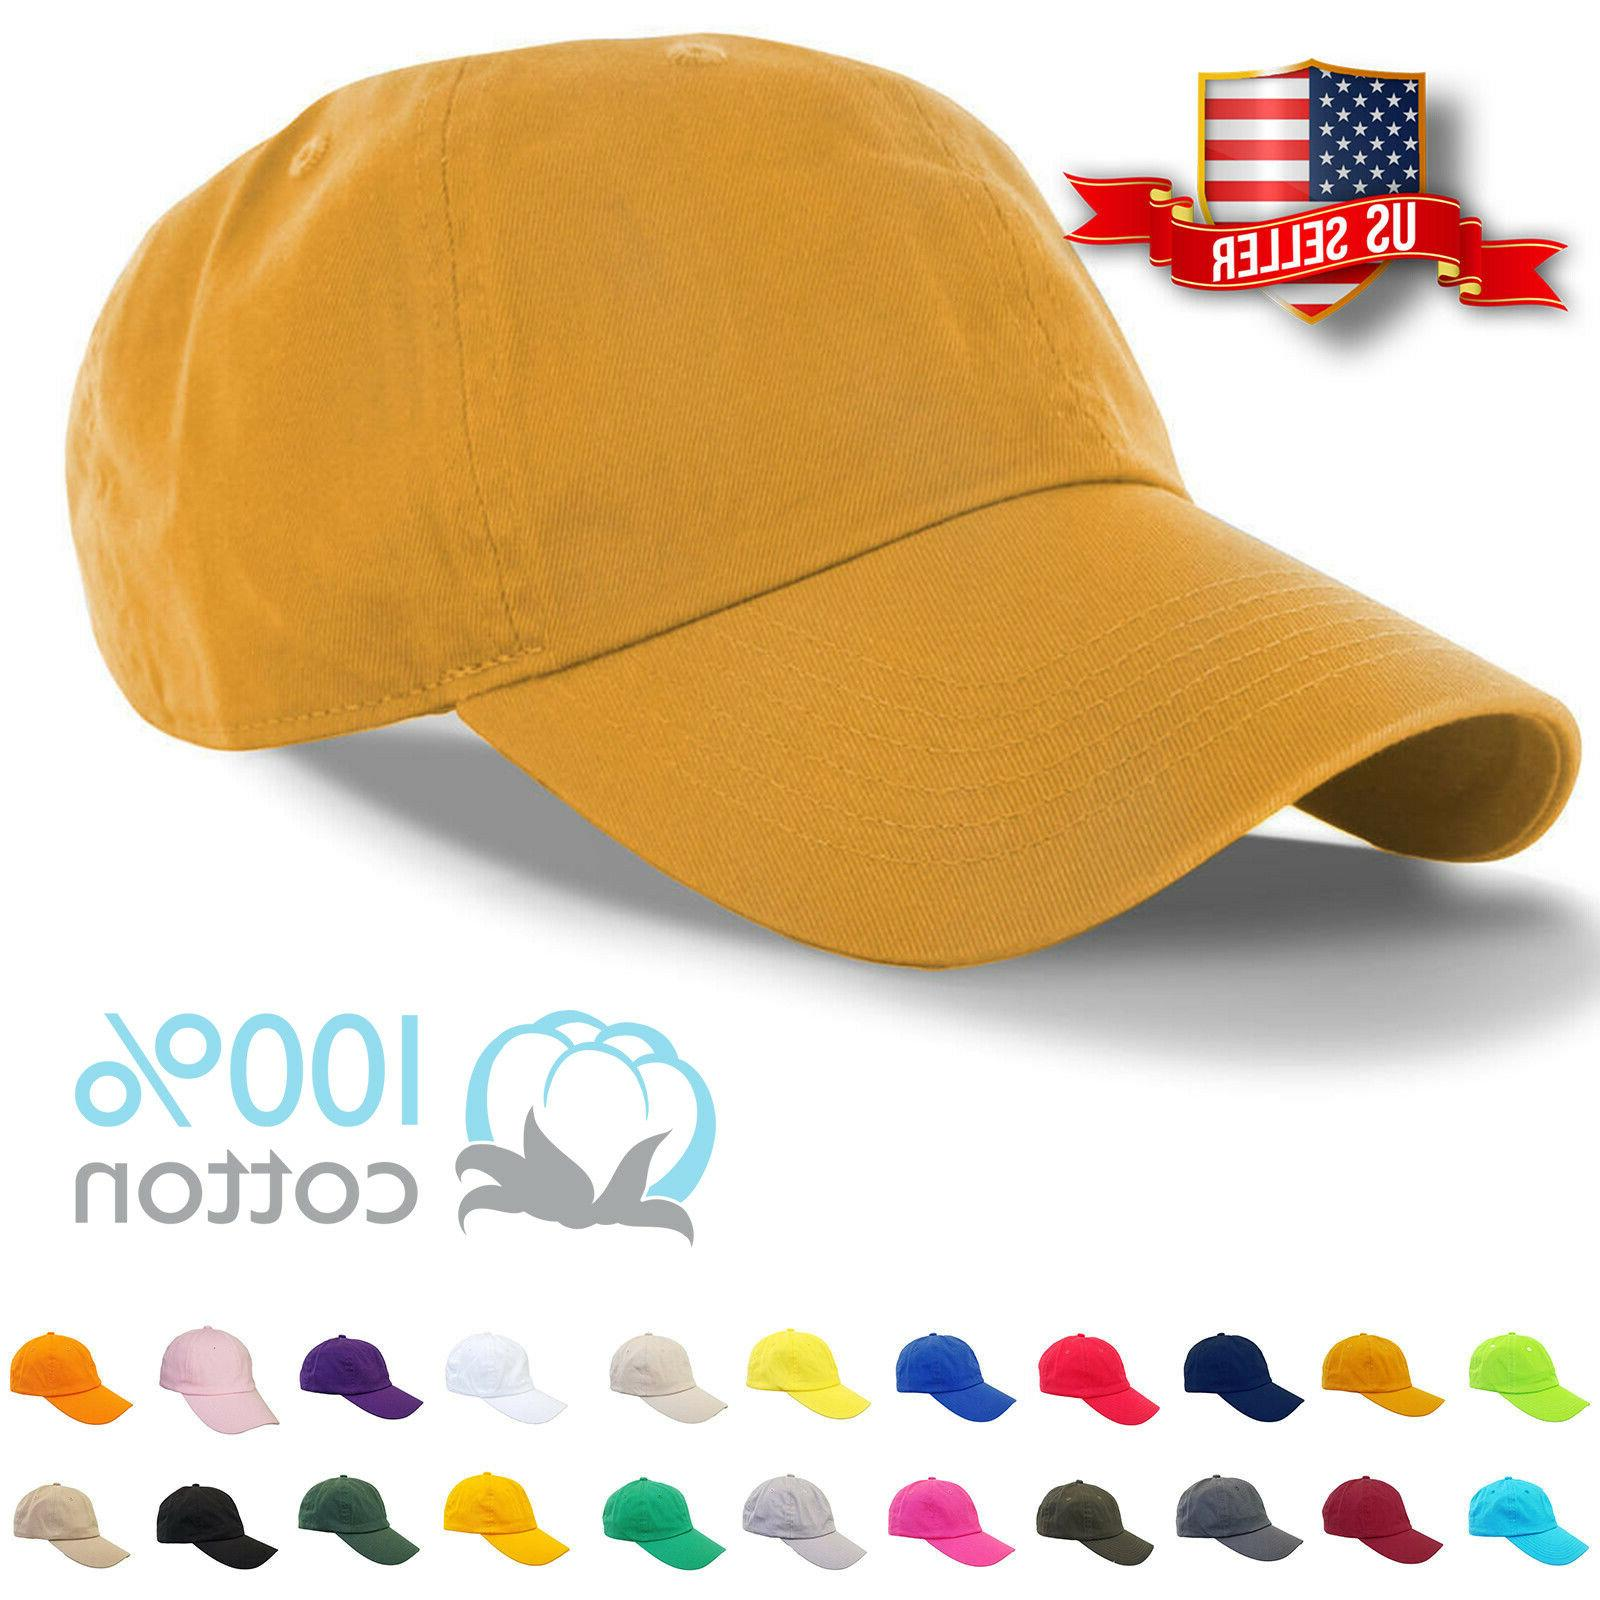 baseball cap plain mens cotton adjustable solid